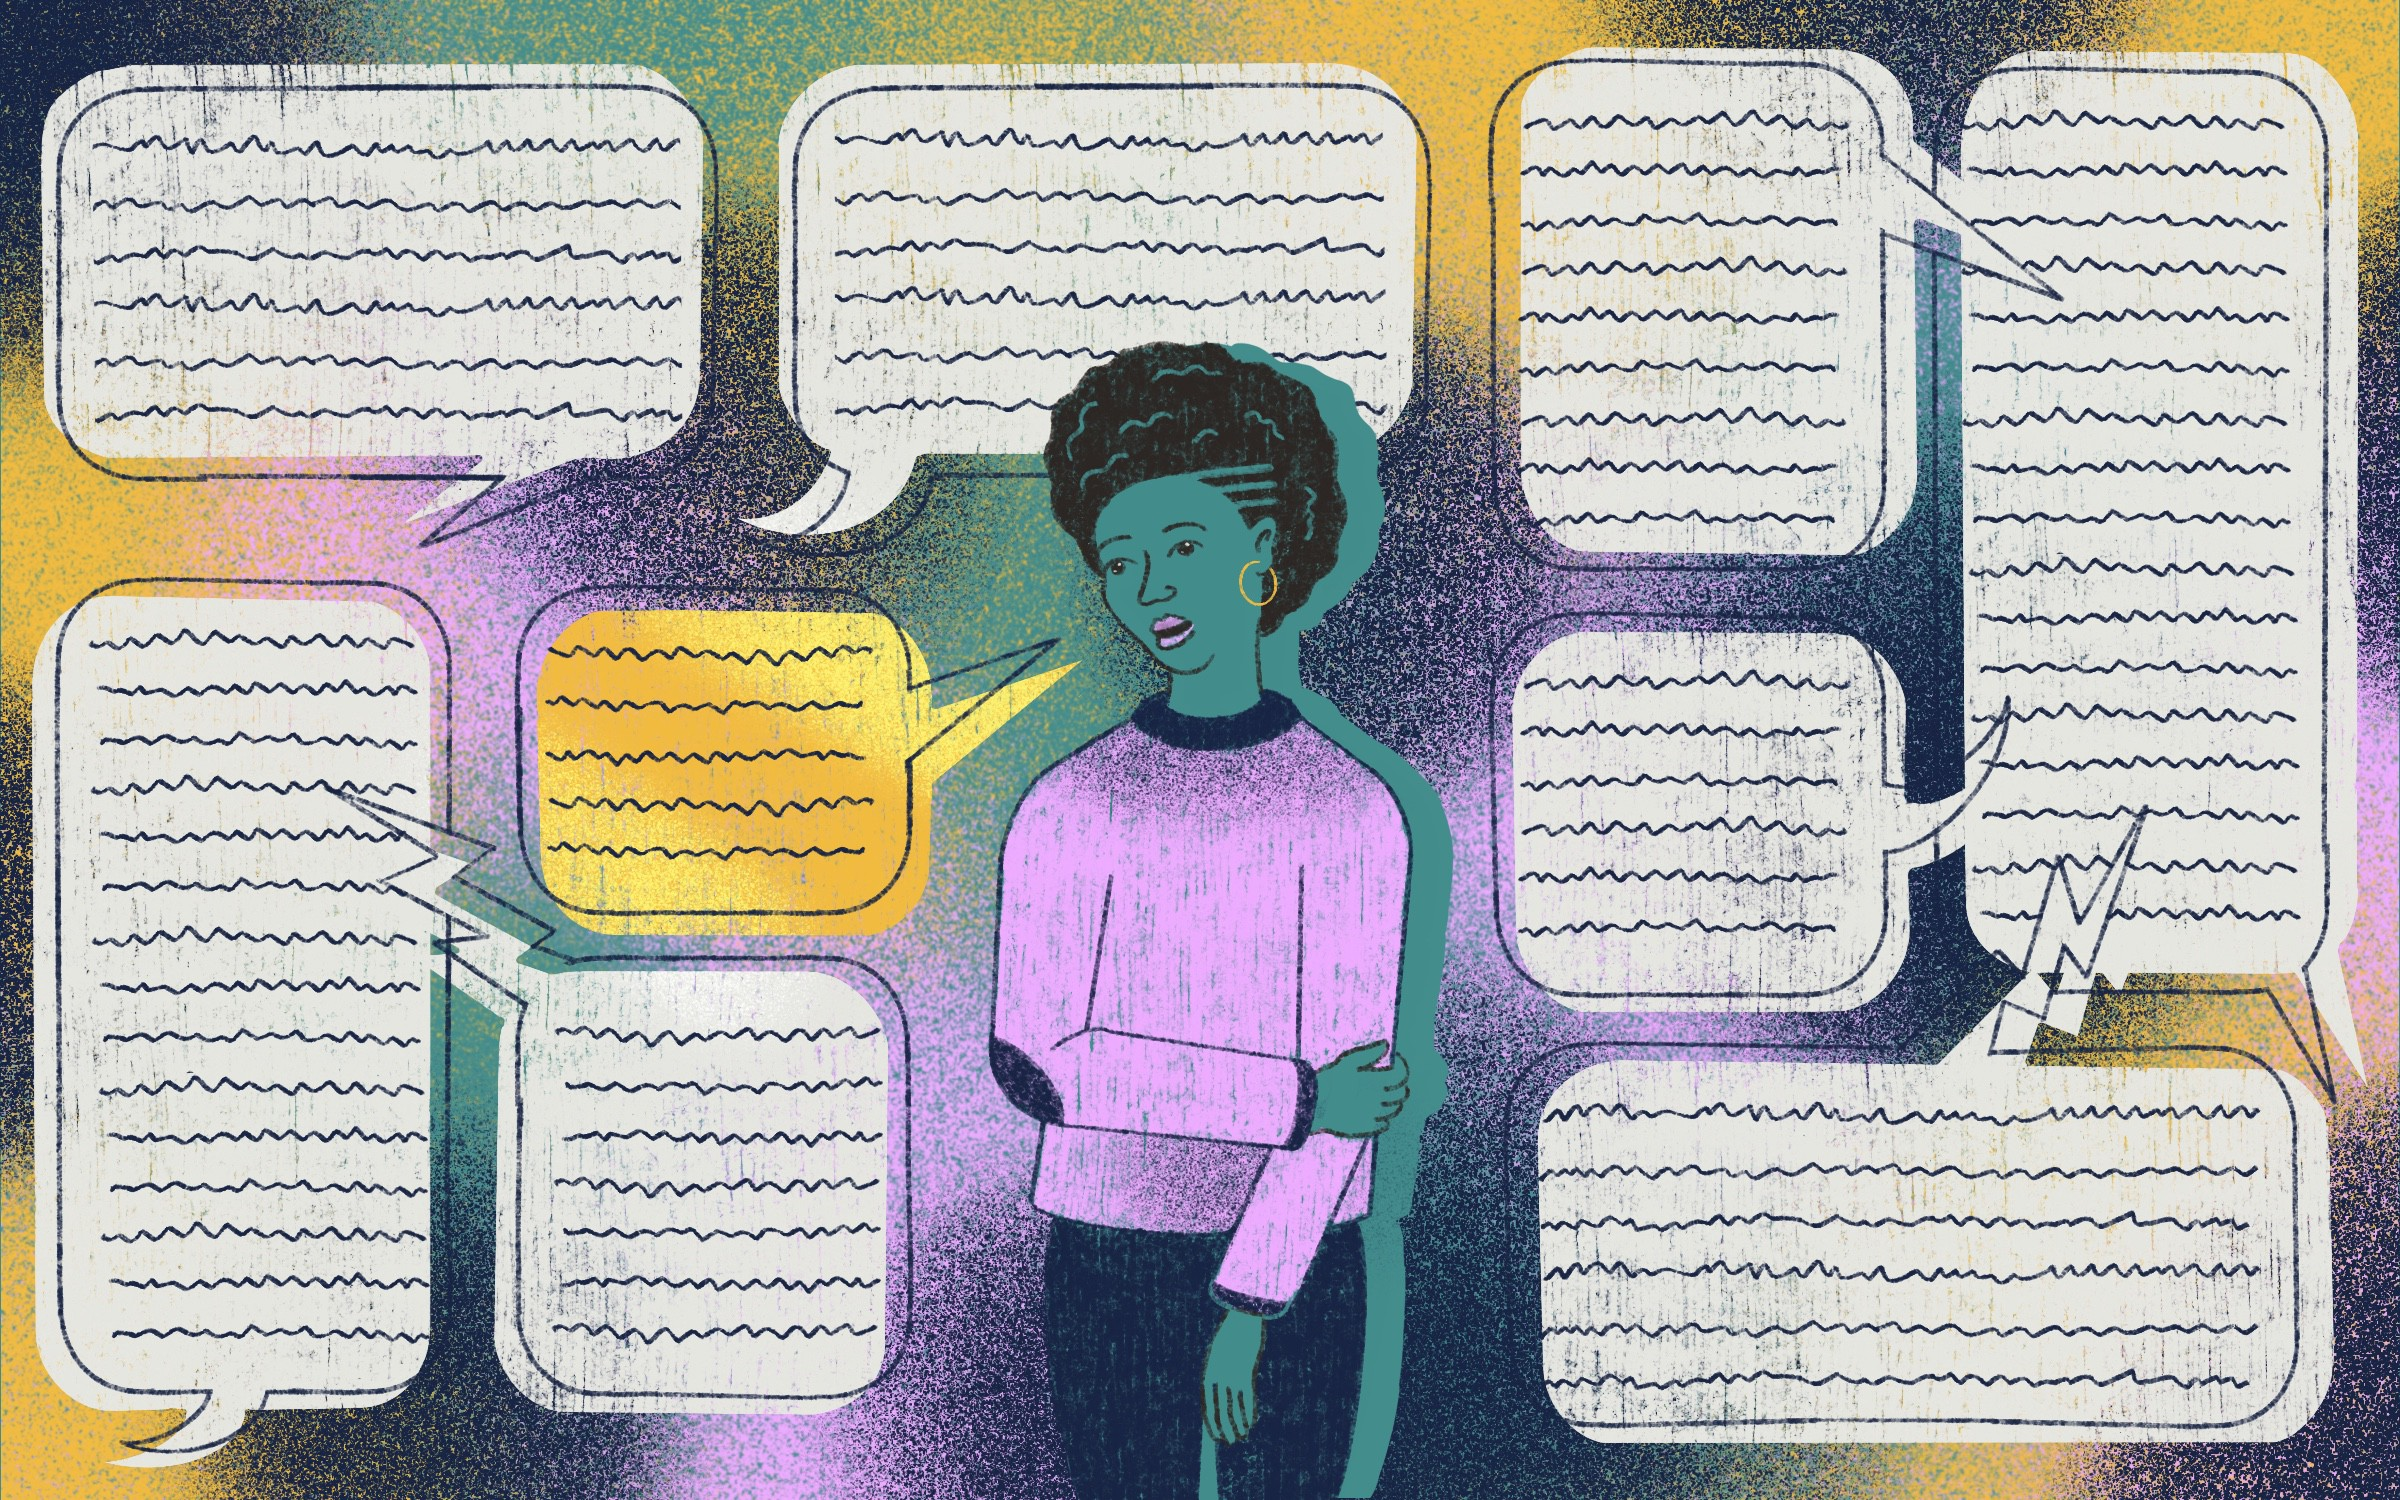 An illustration of a black person surrounded by text bubbles.